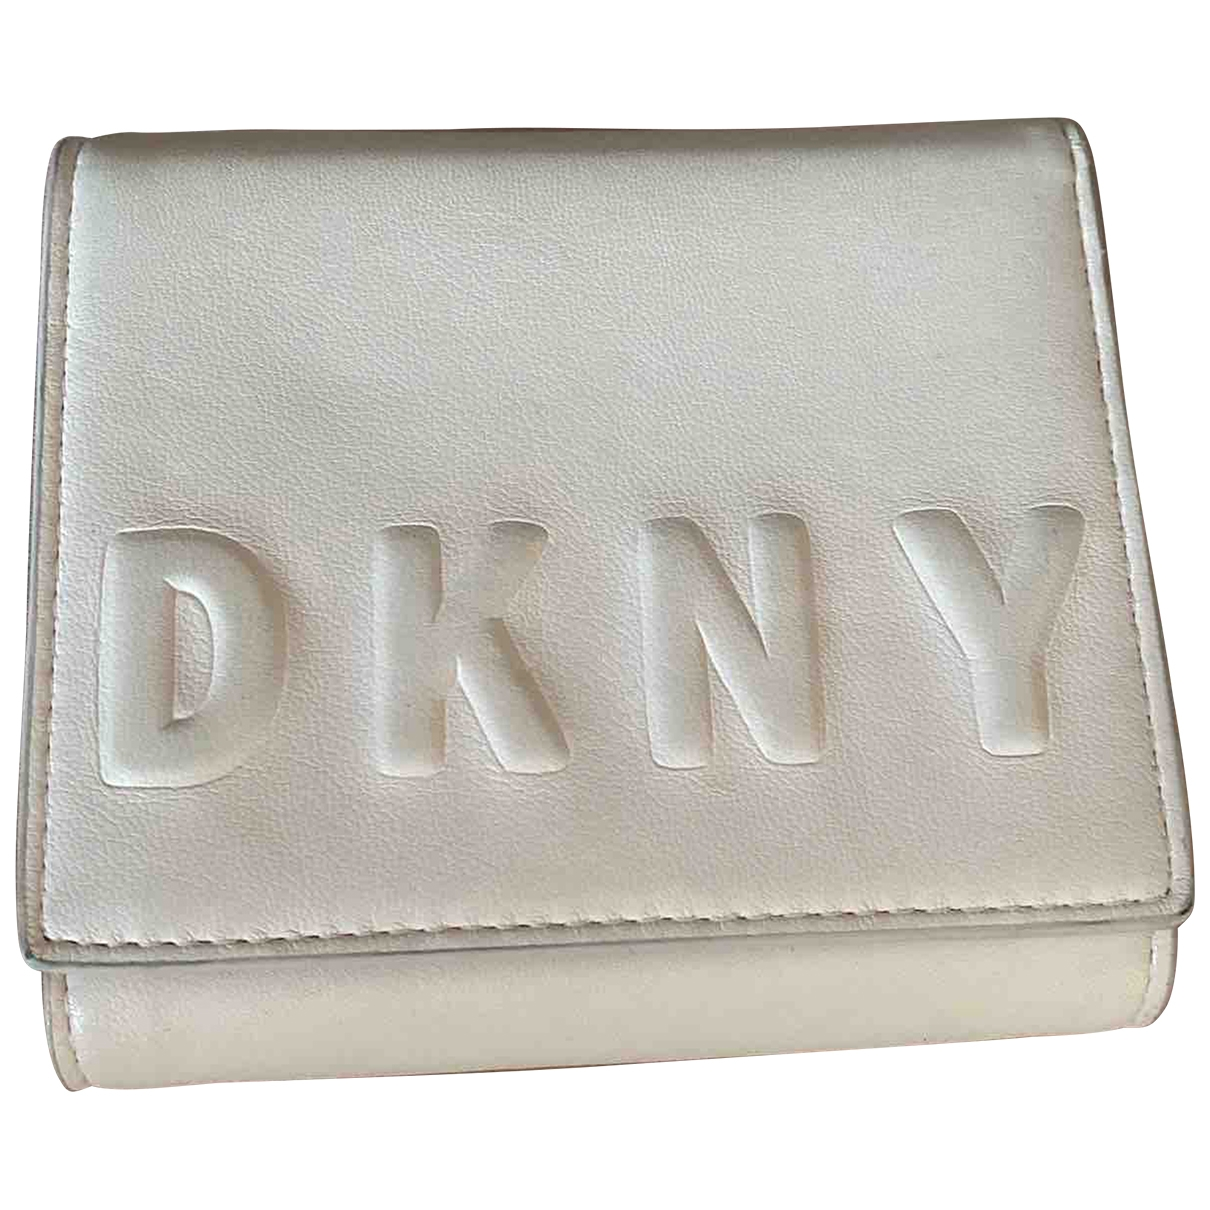 Dkny \N Pink Leather wallet for Women \N